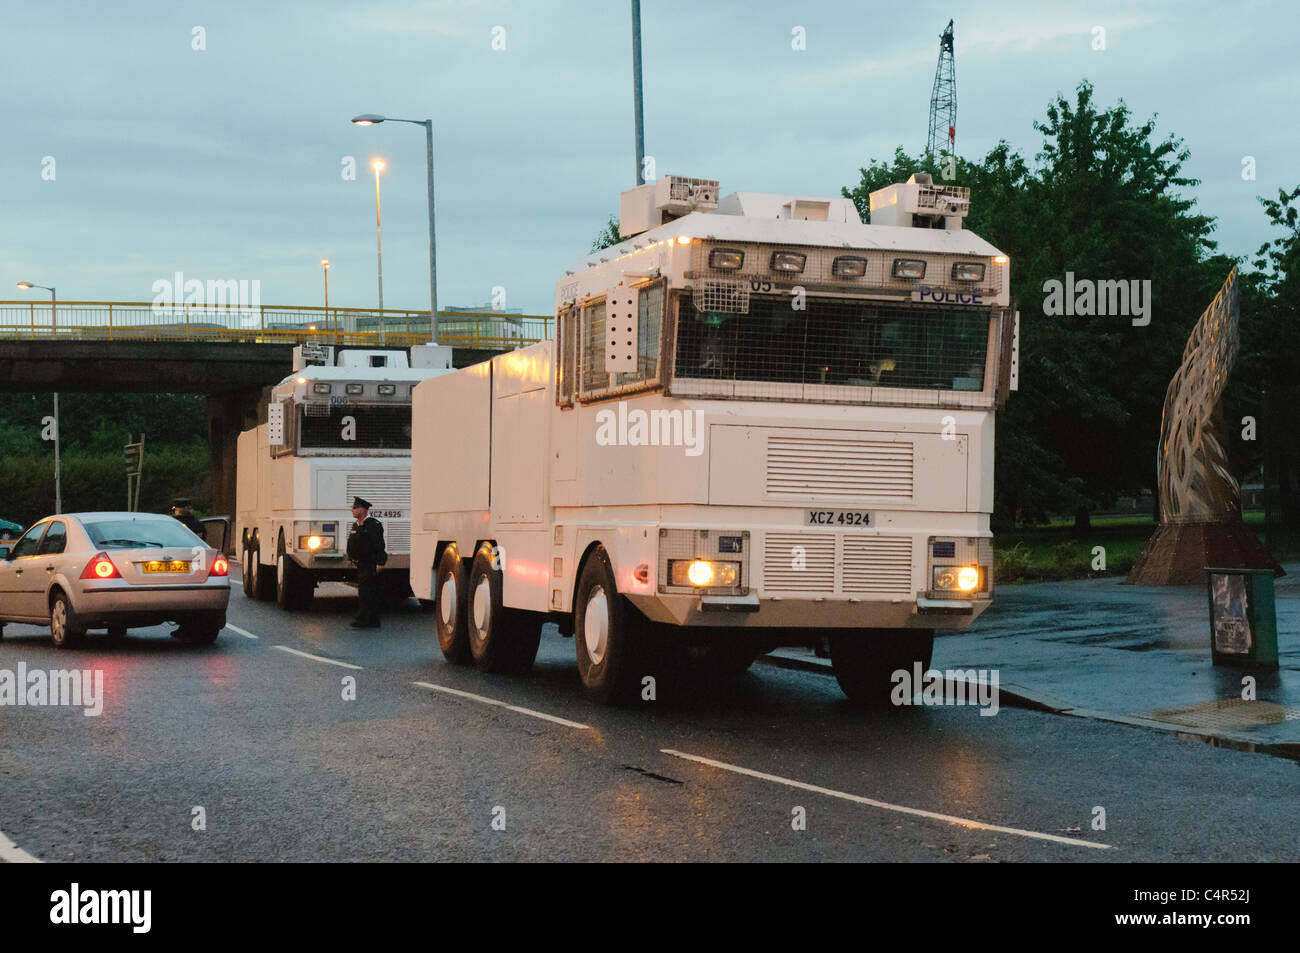 Two PSNI water cannon parked up and waiting to be deployed for crowd control. - Stock Image